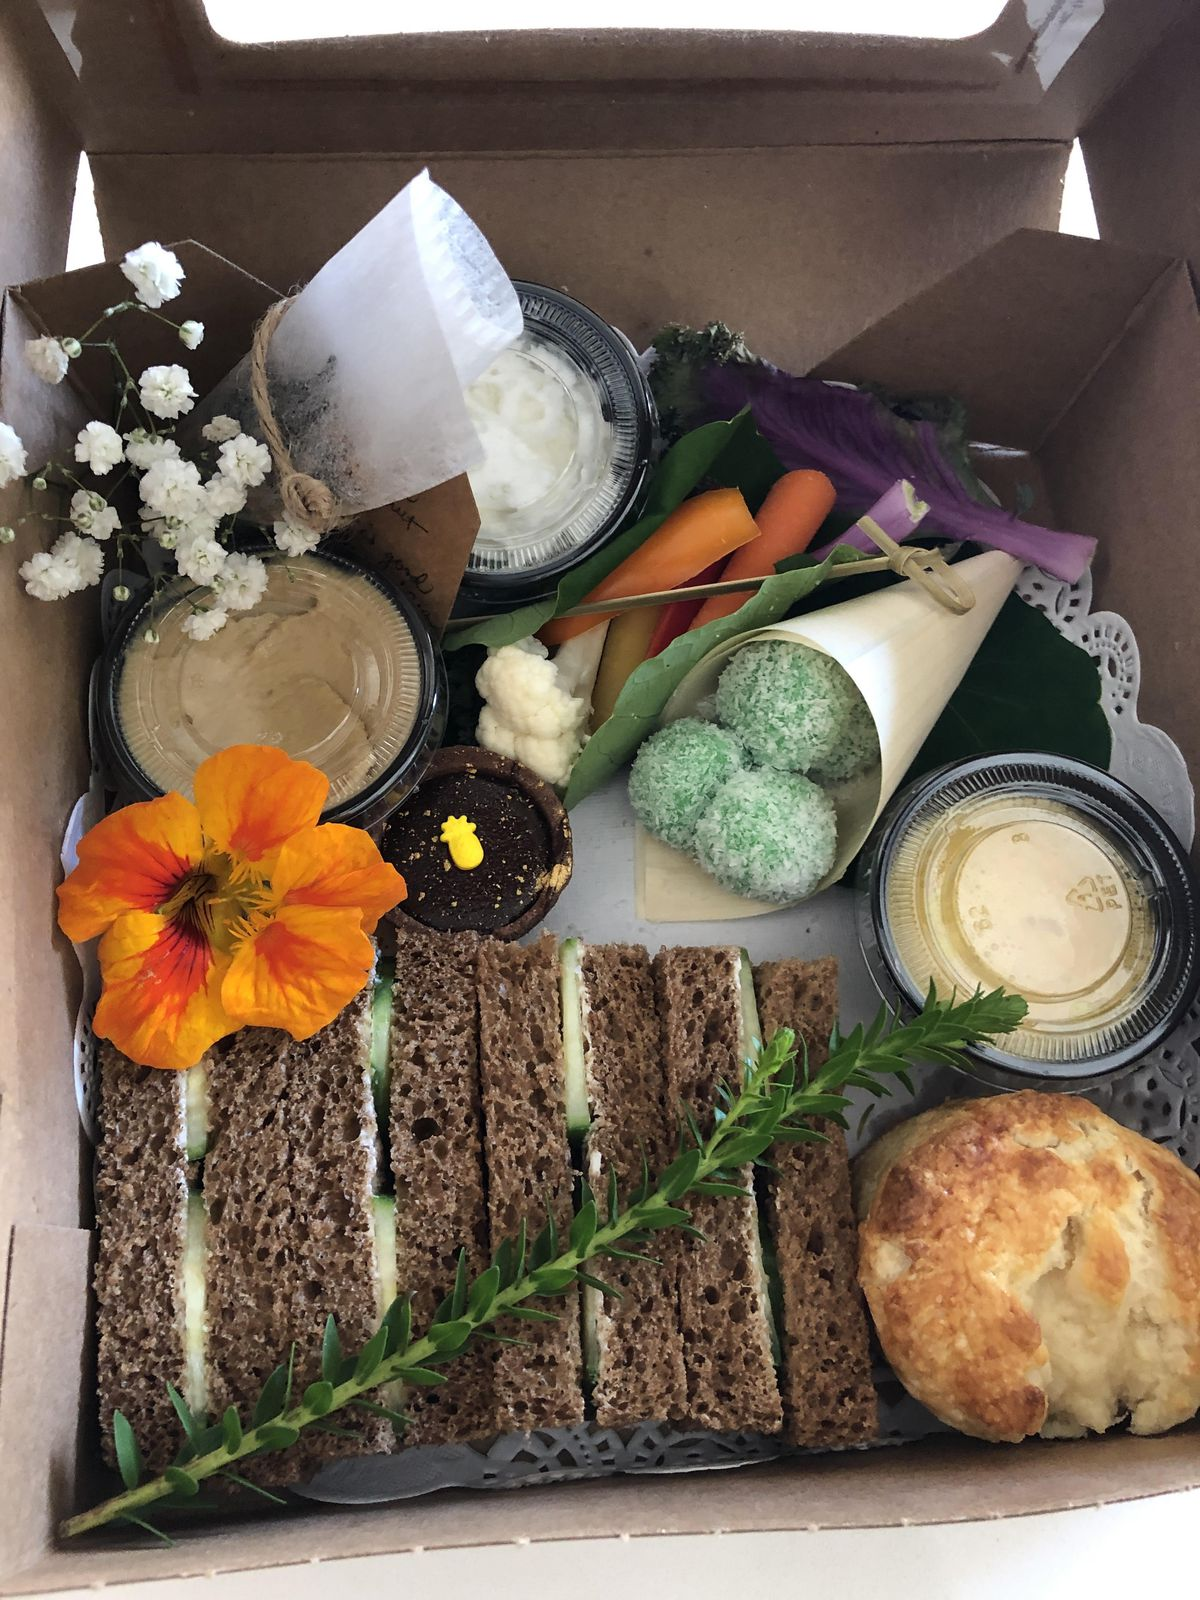 Close-up of another afternoon tea box, with finger sandwiches, scones, and a garnish of fresh flowers